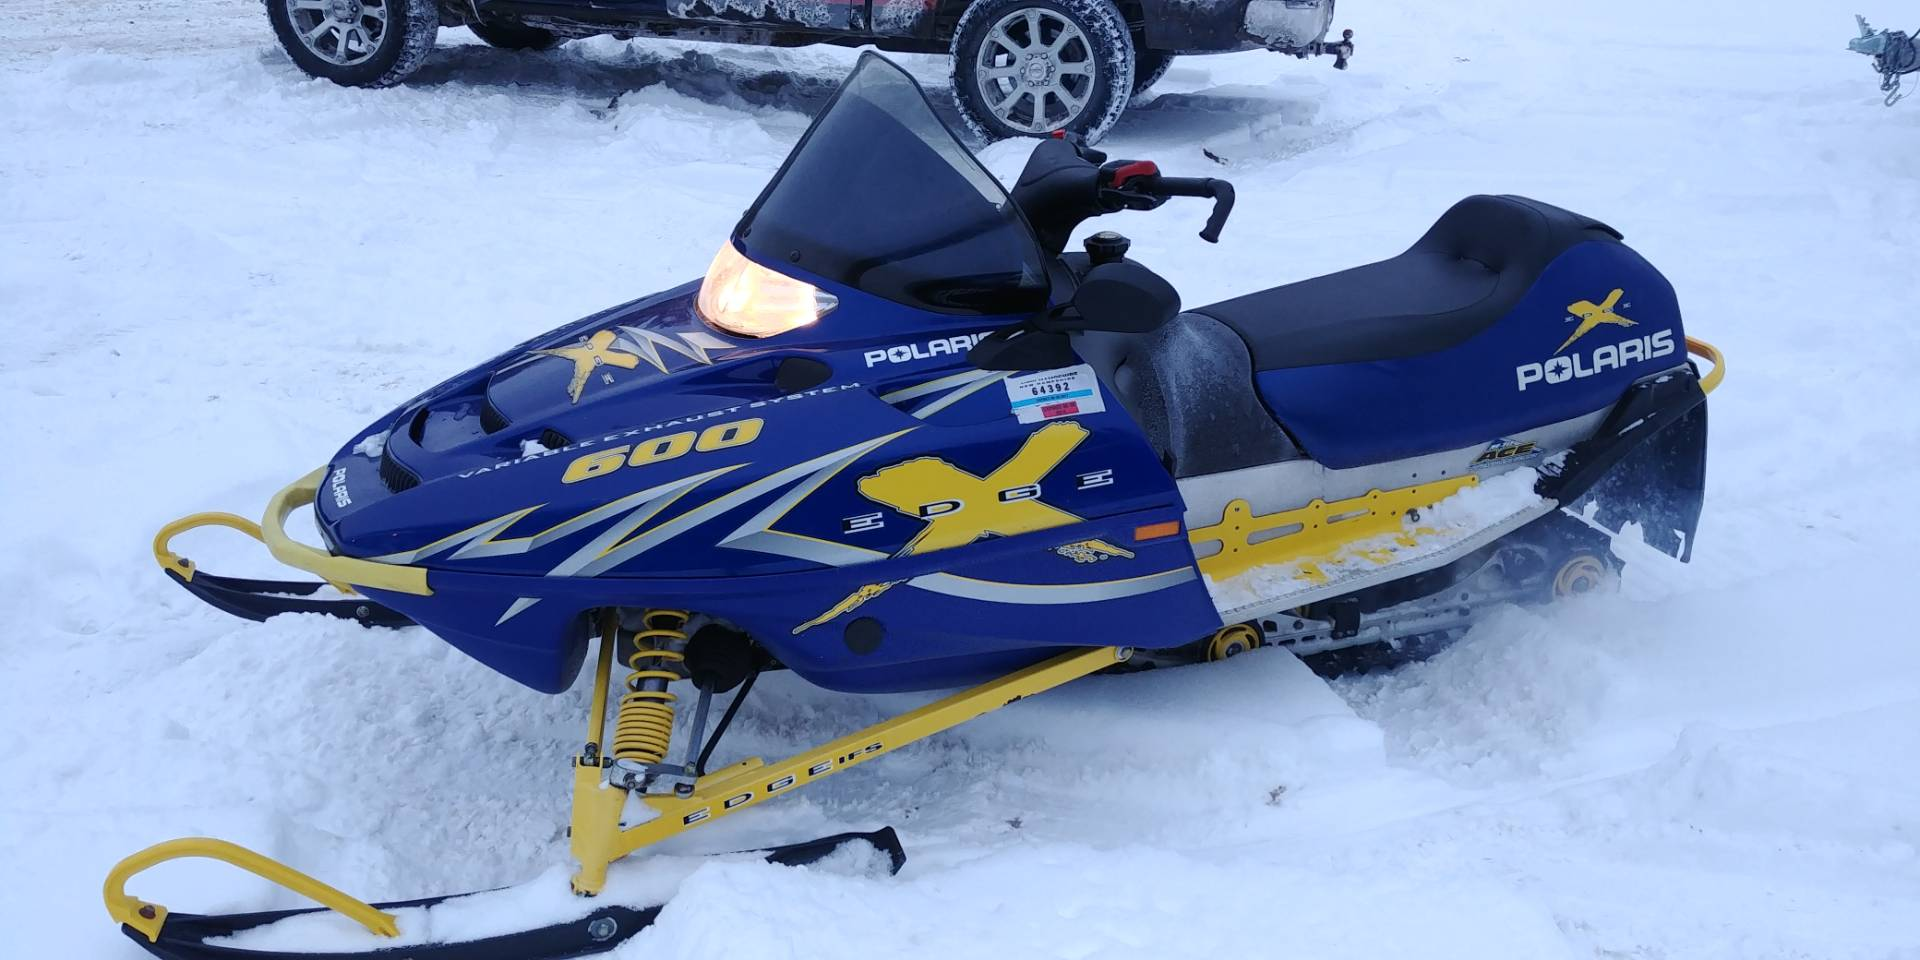 Polaris Snowmobiles For Sale >> Used 2003 Polaris 600 XC SP Snowmobiles in Tamworth, NH | Stock Number: N/A